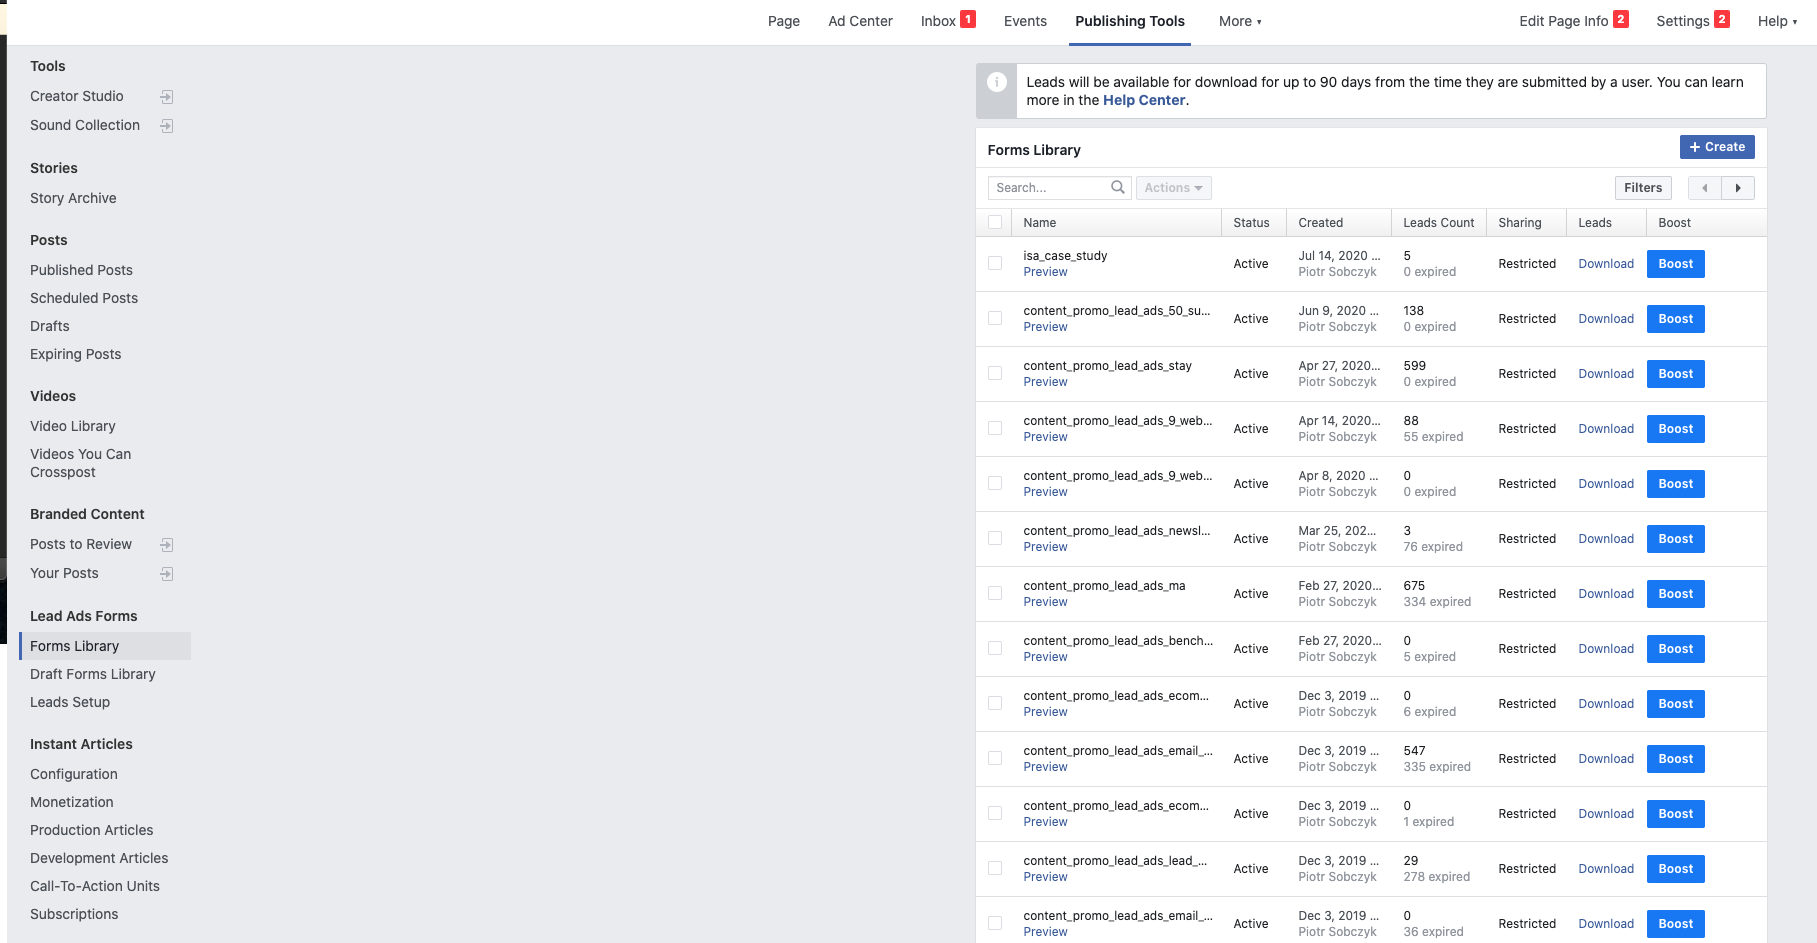 Image showing the Facebook publishing tools where you'll find the option to export your new leads so that you can later import them into GetResponse.